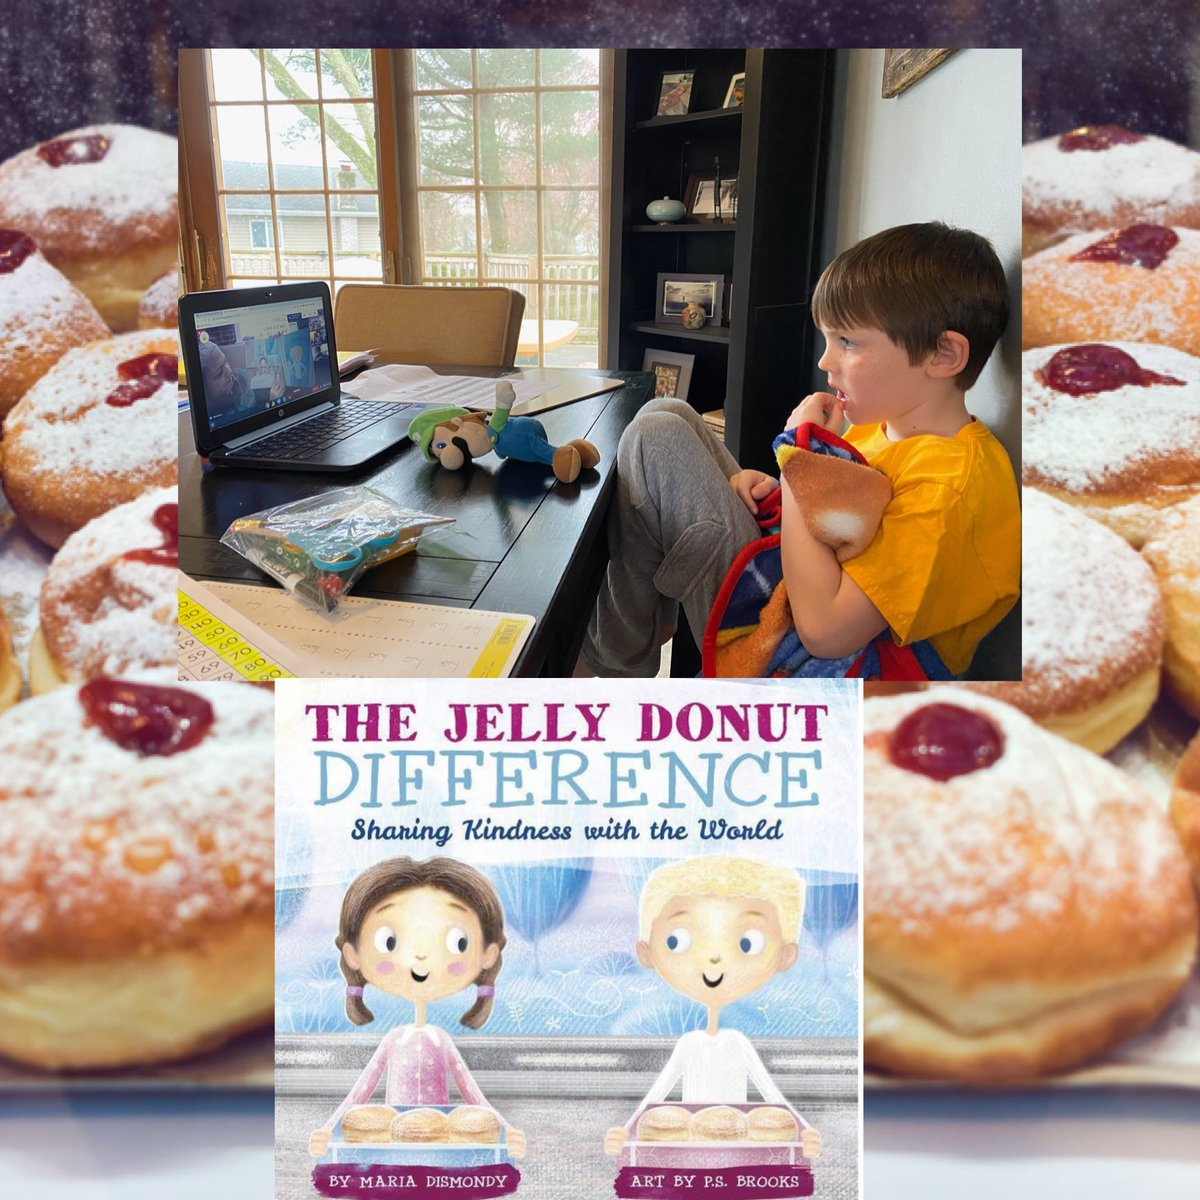 Today we took a bite out of the heartwarming #story The Jelly Donut Difference! #Sharing #Kindness with the #World! So many wonderful lessons in this story! #kindness #empathy #feelings #siblinglove #workingtogether #neighbors #ItTakesAVillage #bozzisbunch pic.twitter.com/IQwyLrZrvt